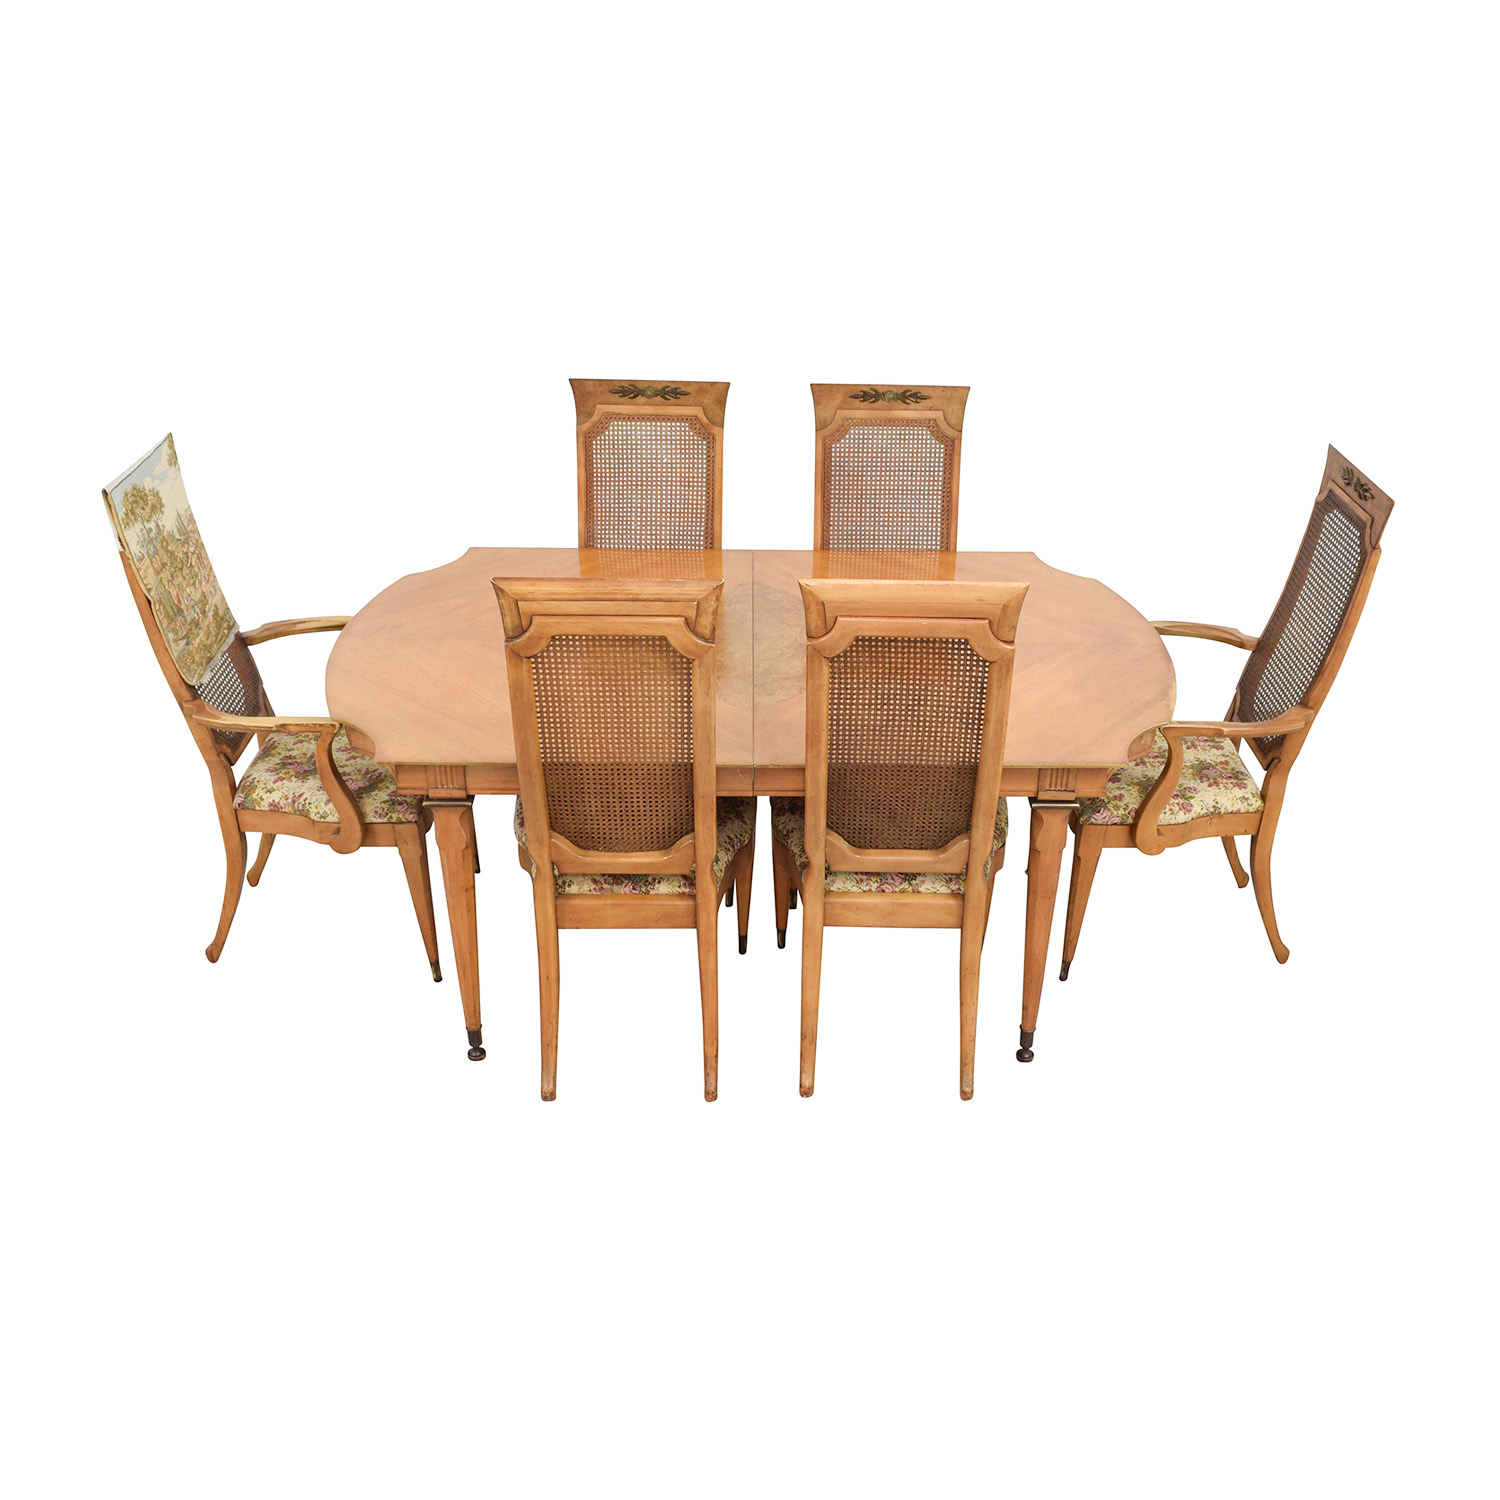 ... Merz 1968 Merz 1968 Wood Dining Set With Floral Upholstered Chairs  Dining Sets ...